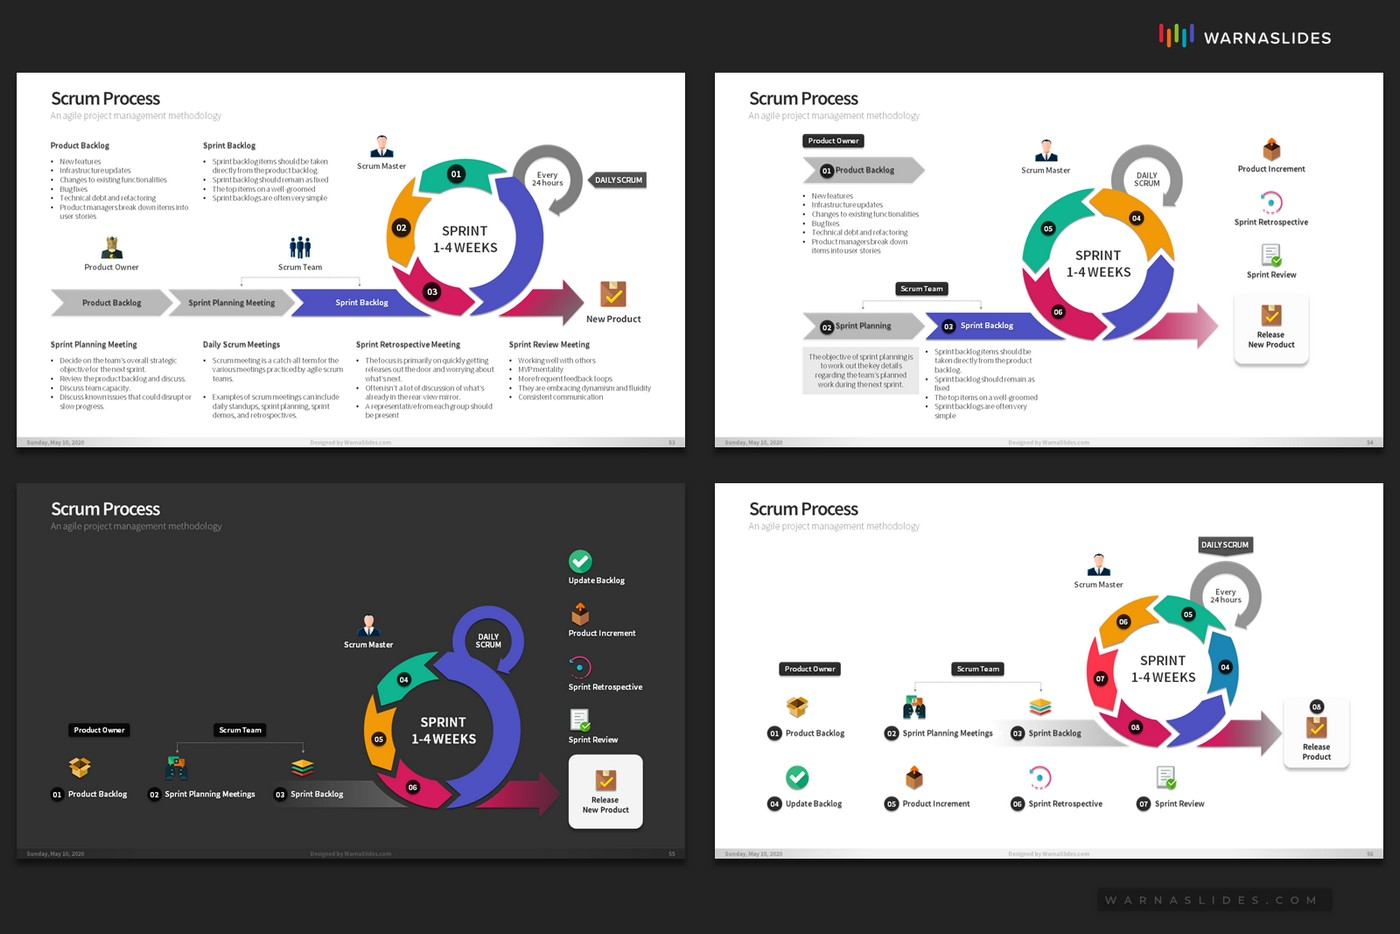 Agile-Scrum-Framework-Scrum-Process-Diagram-PowerPoint-Template-for-Business-Pitch-Deck-Professional-Creative-PowerPoint-Icons-017